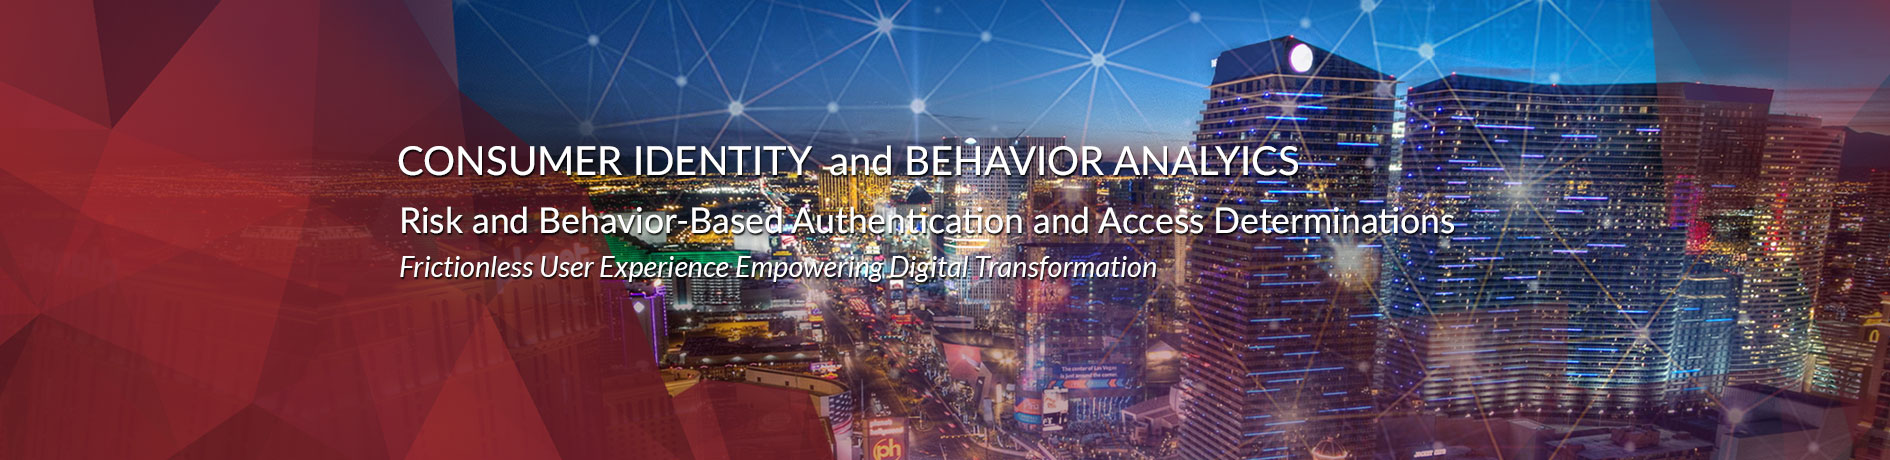 Consumer Behavior and Security Analytics (CIBA)